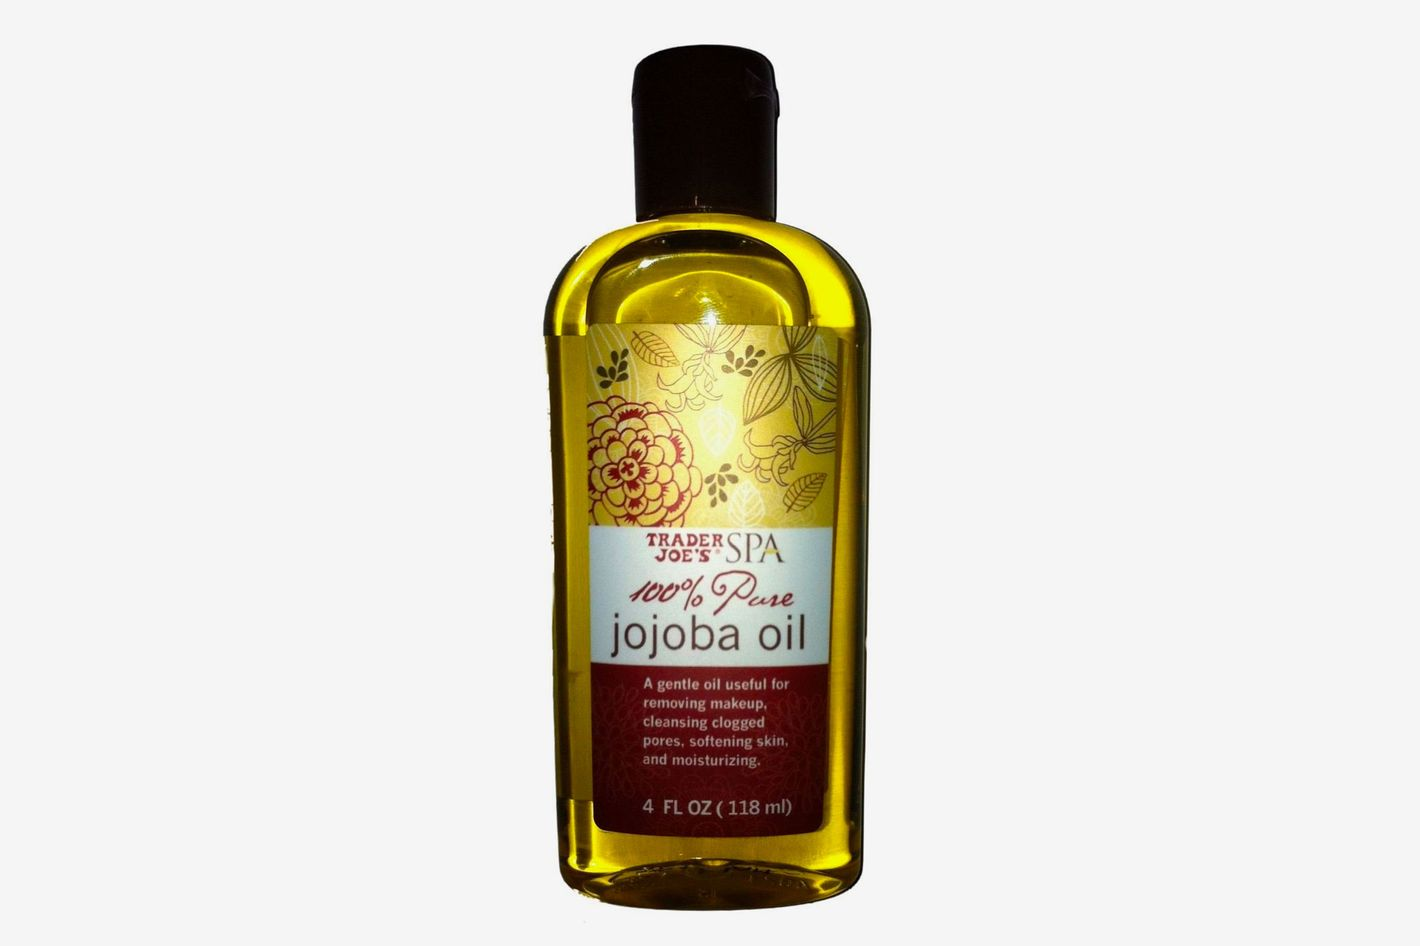 Trader Joe's 100% Pure Jojoba Oil